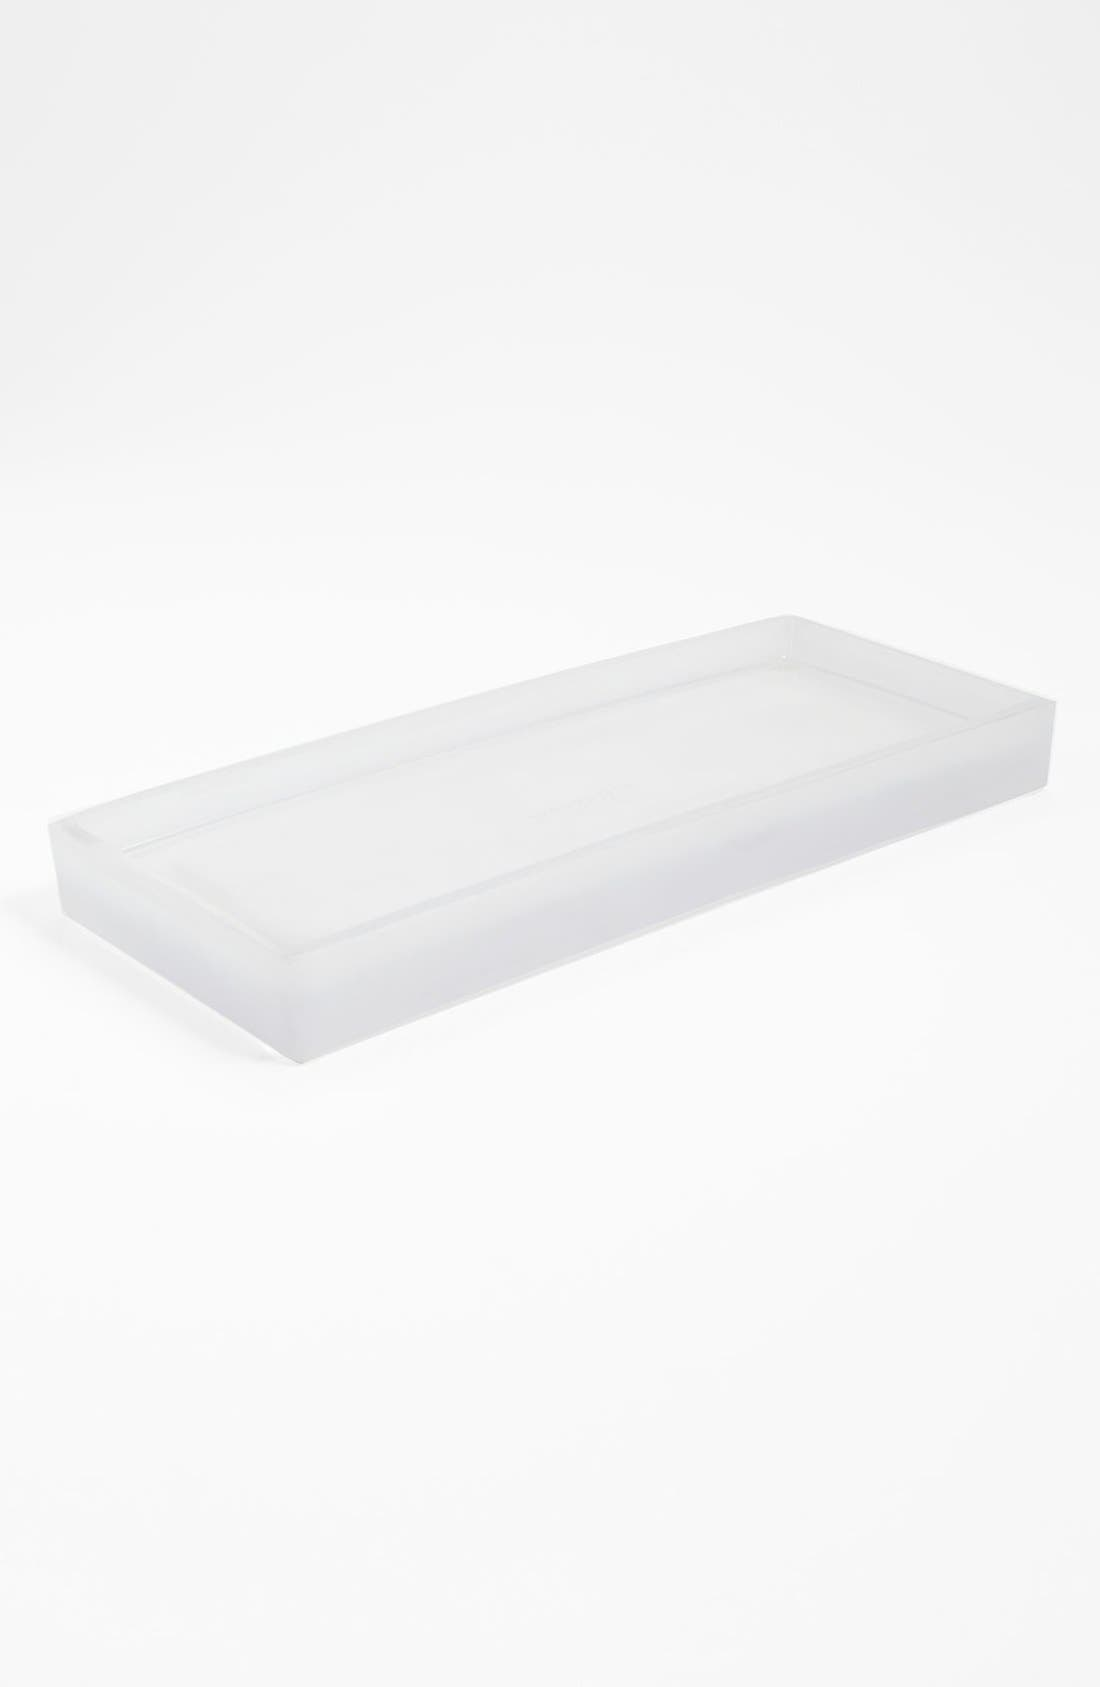 Main Image - Waterworks Studio 'Oxygen' Tray (Online Only)